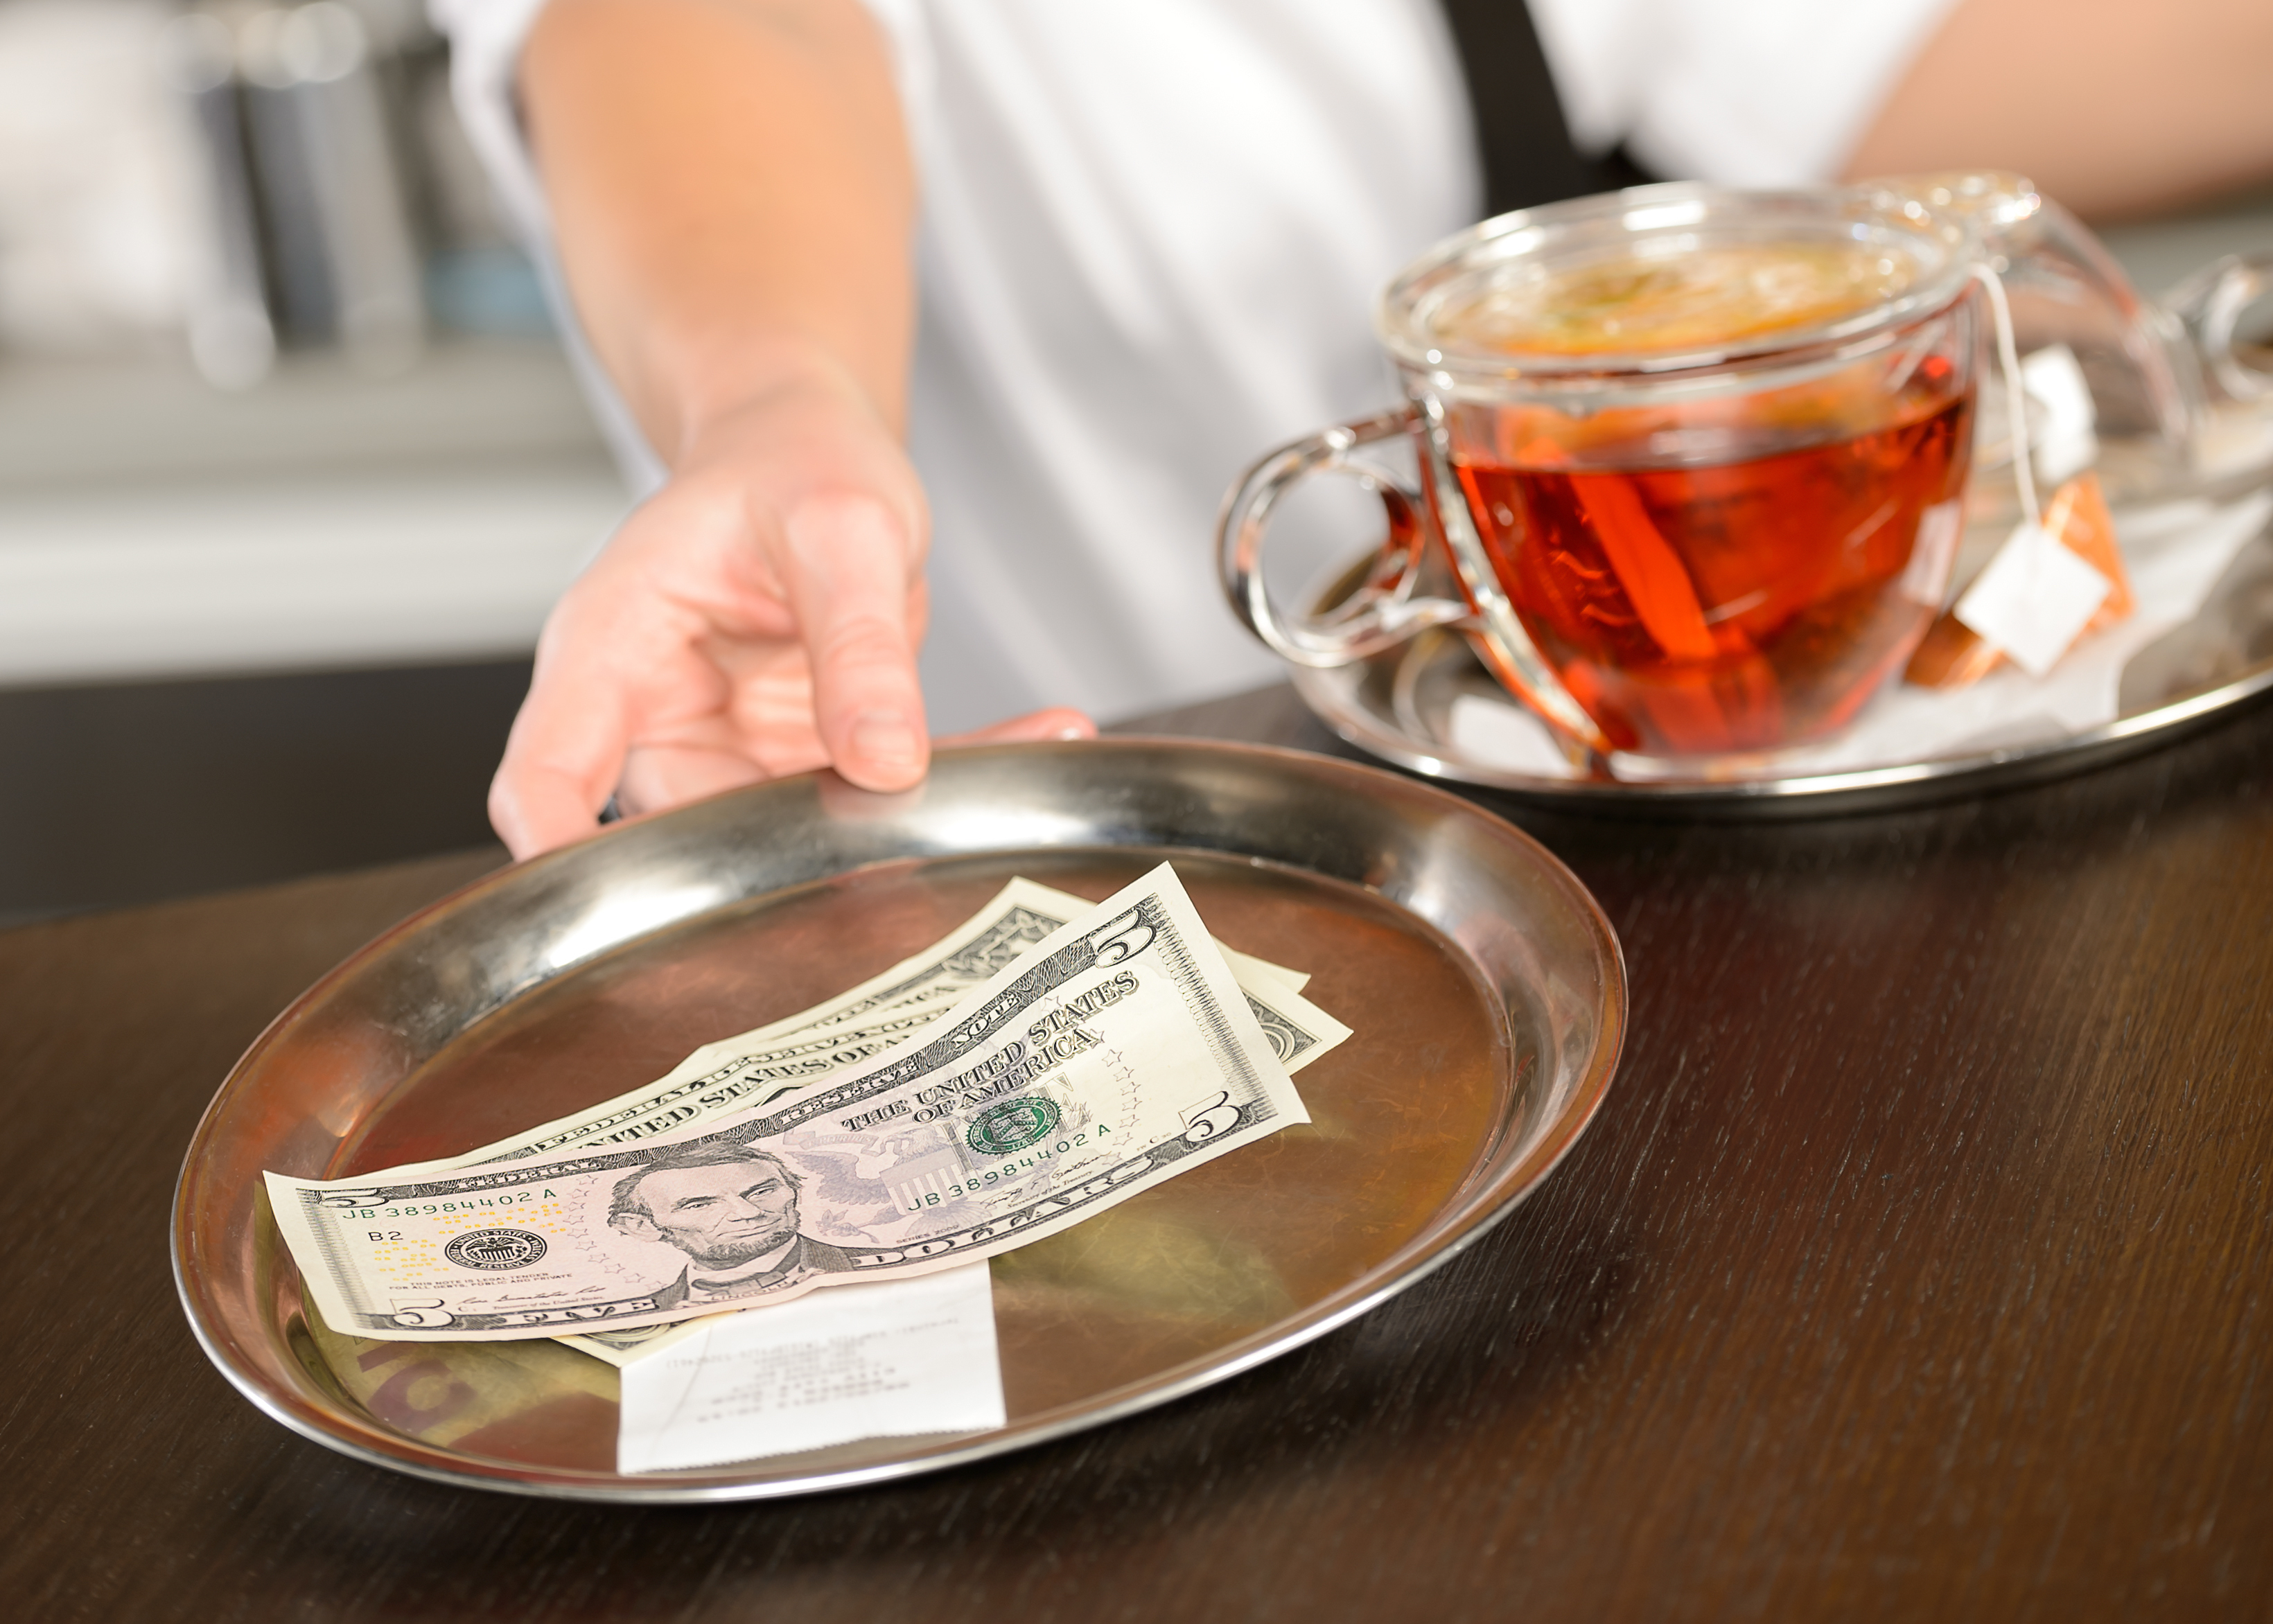 Servers' Tips Cannot Be Kept by Restaurant Managers